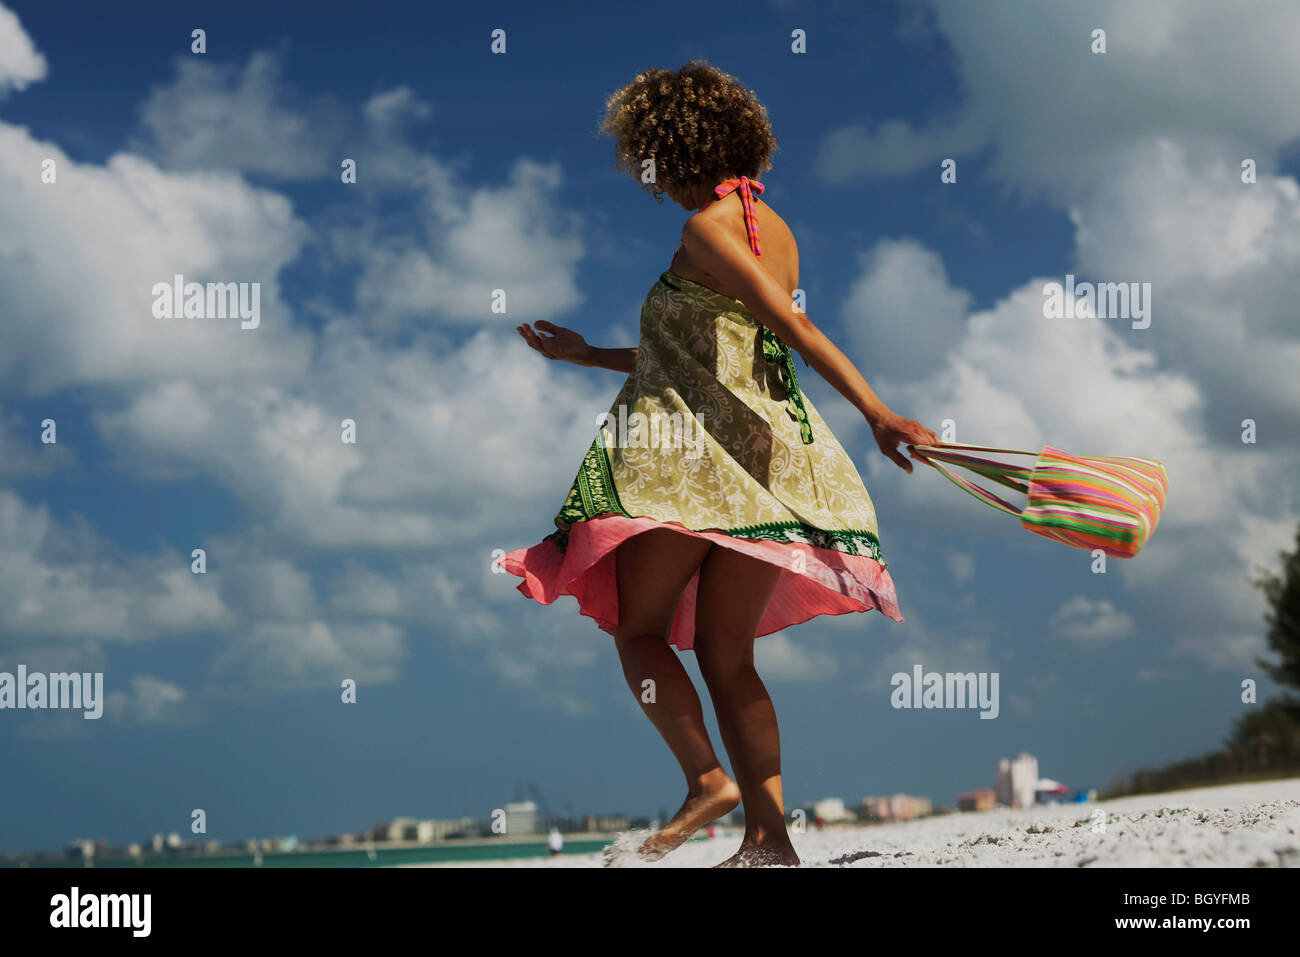 Woman in sundress spinning on beach - Stock Image